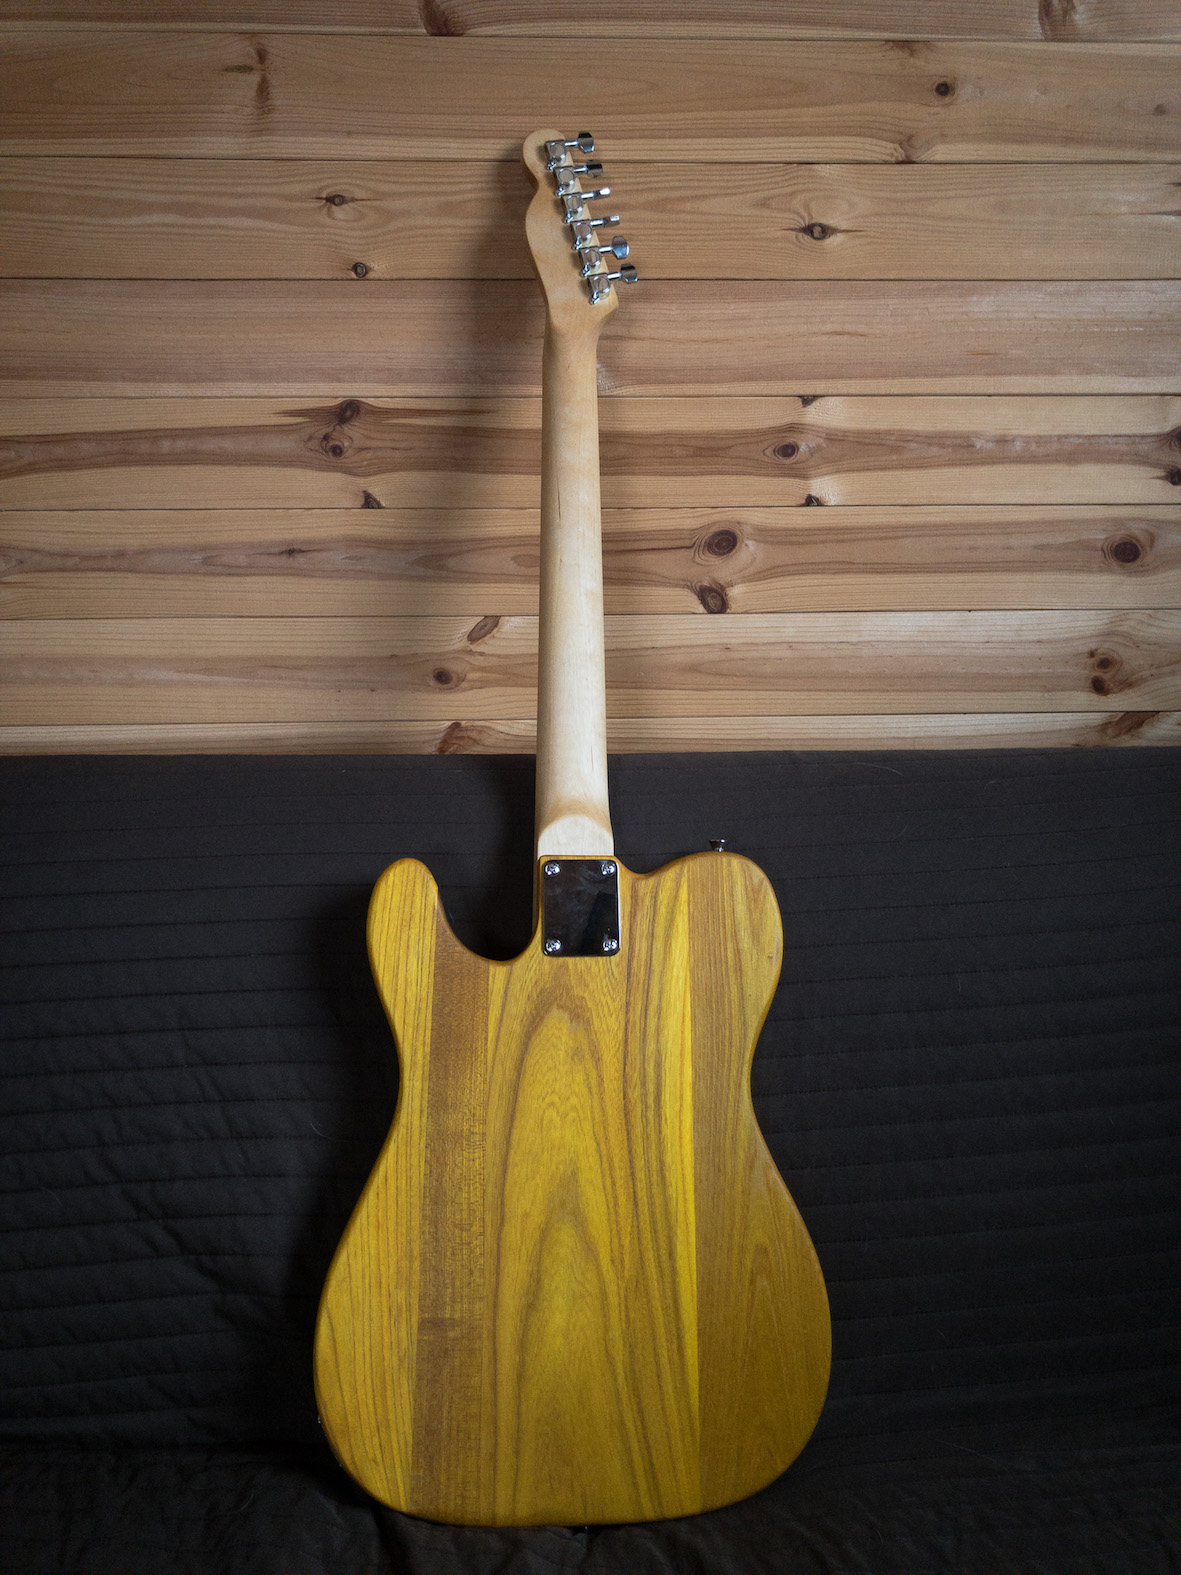 Telecaster Love Thread, No Archtops Allowed-apc_2302-jpg